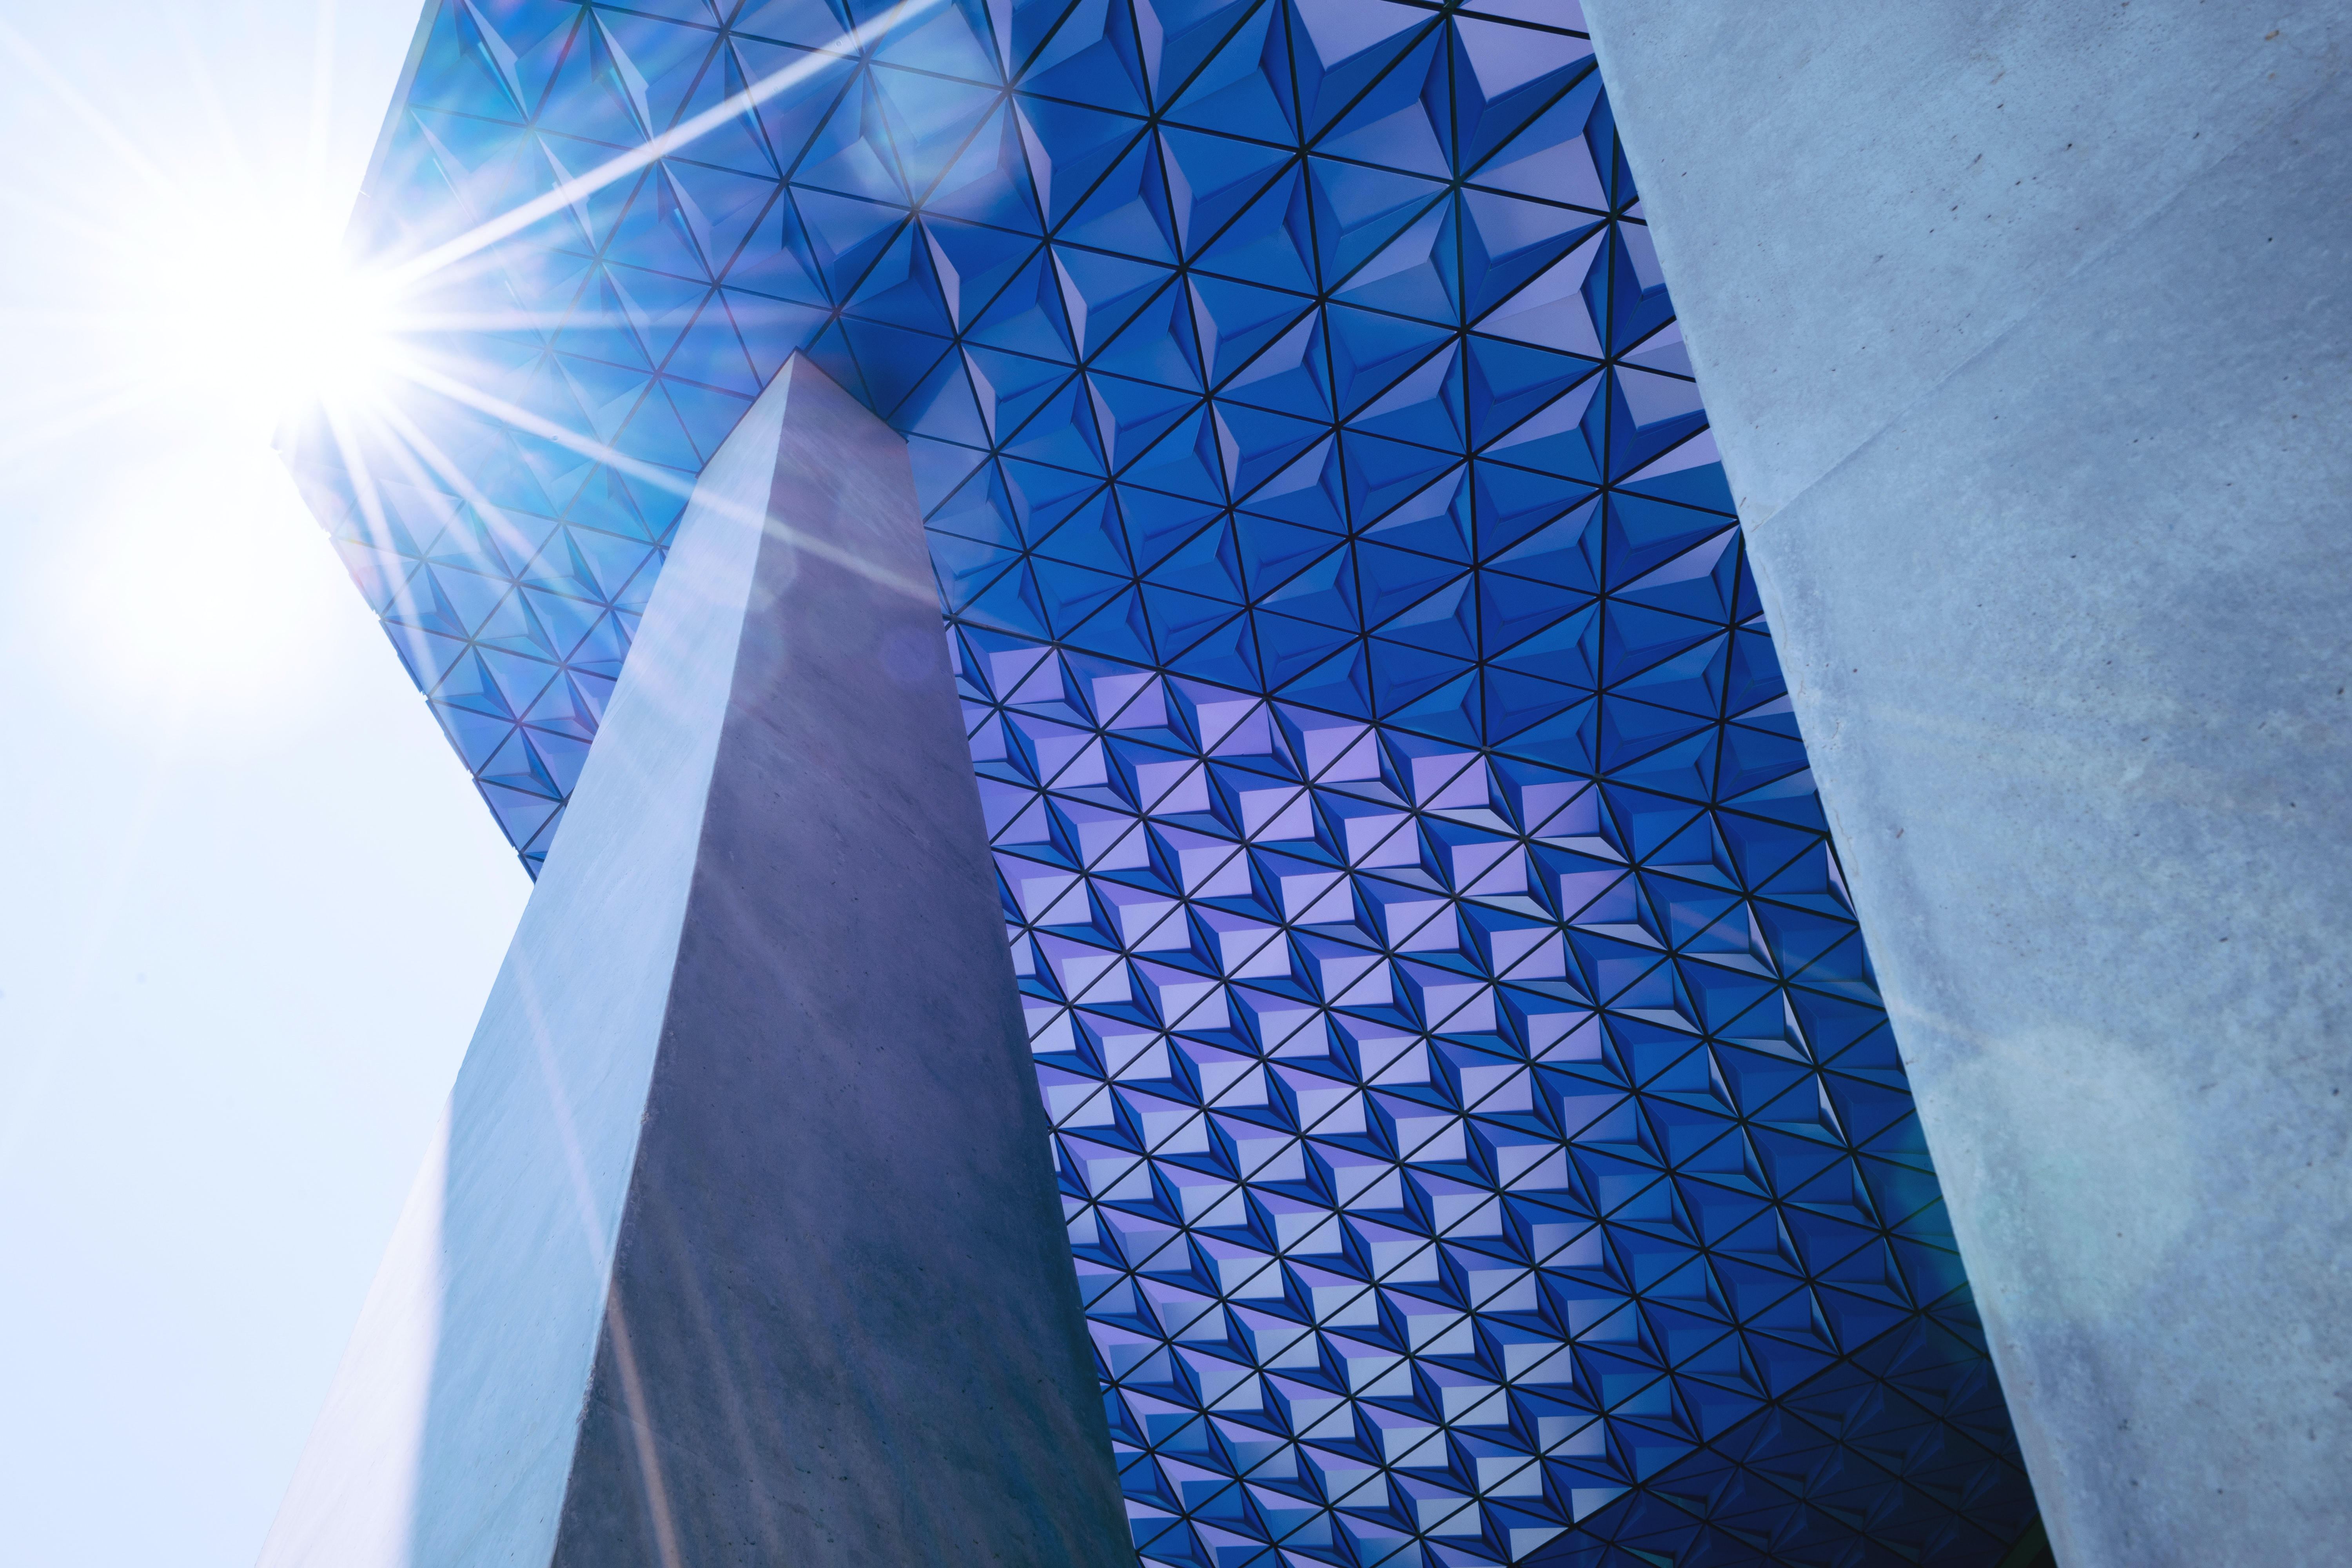 A lens flare over an overhang in the facade of a modern building